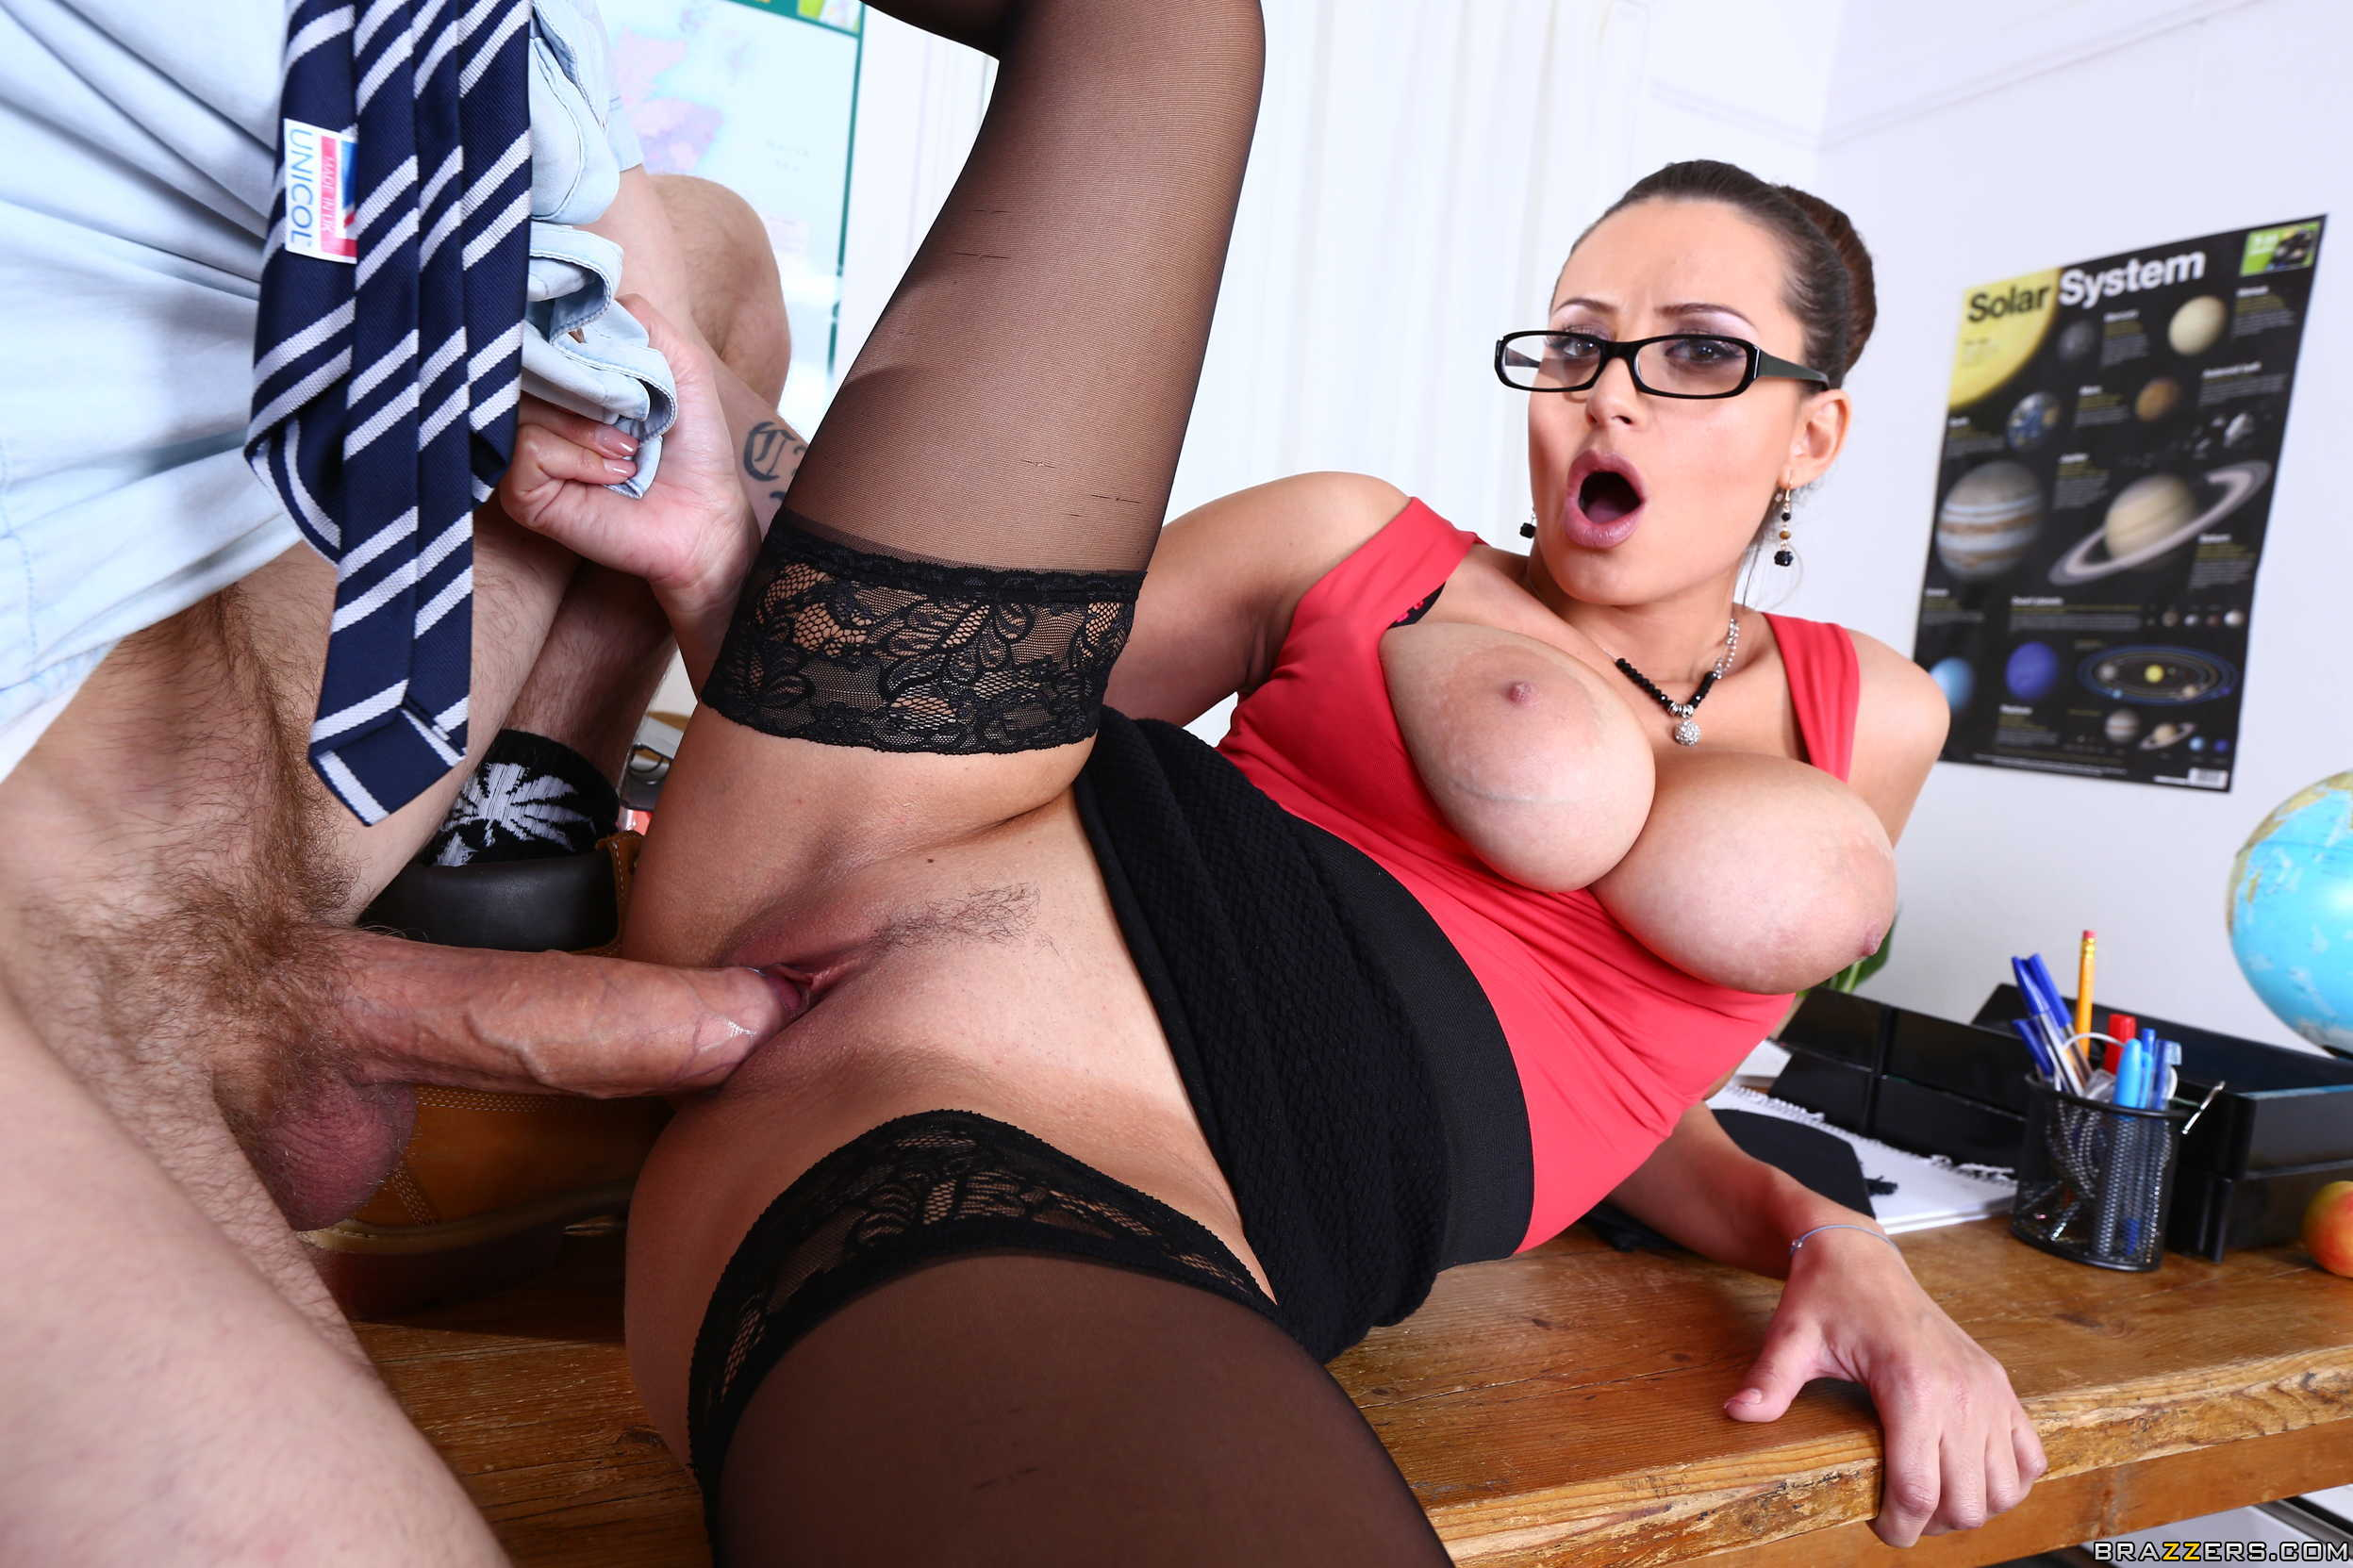 Brazzers big tits at school big tits in history part 3 s 6